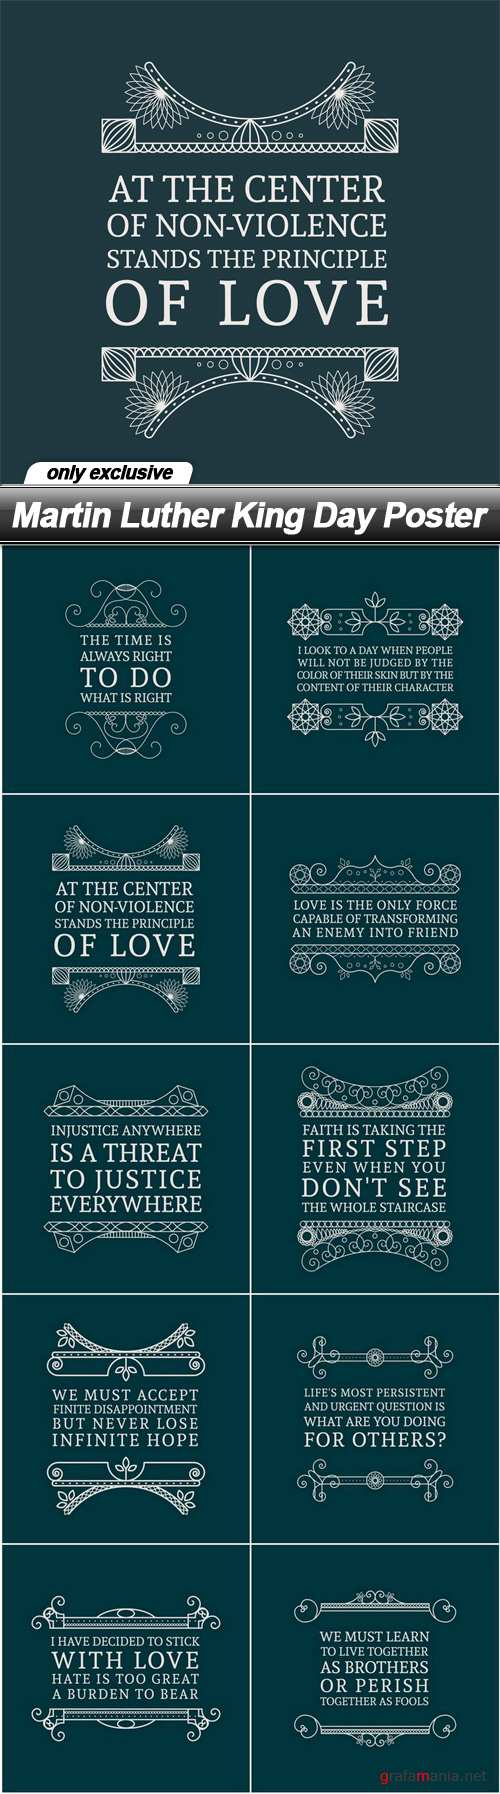 Martin Luther King Day Poster - 10 EPS